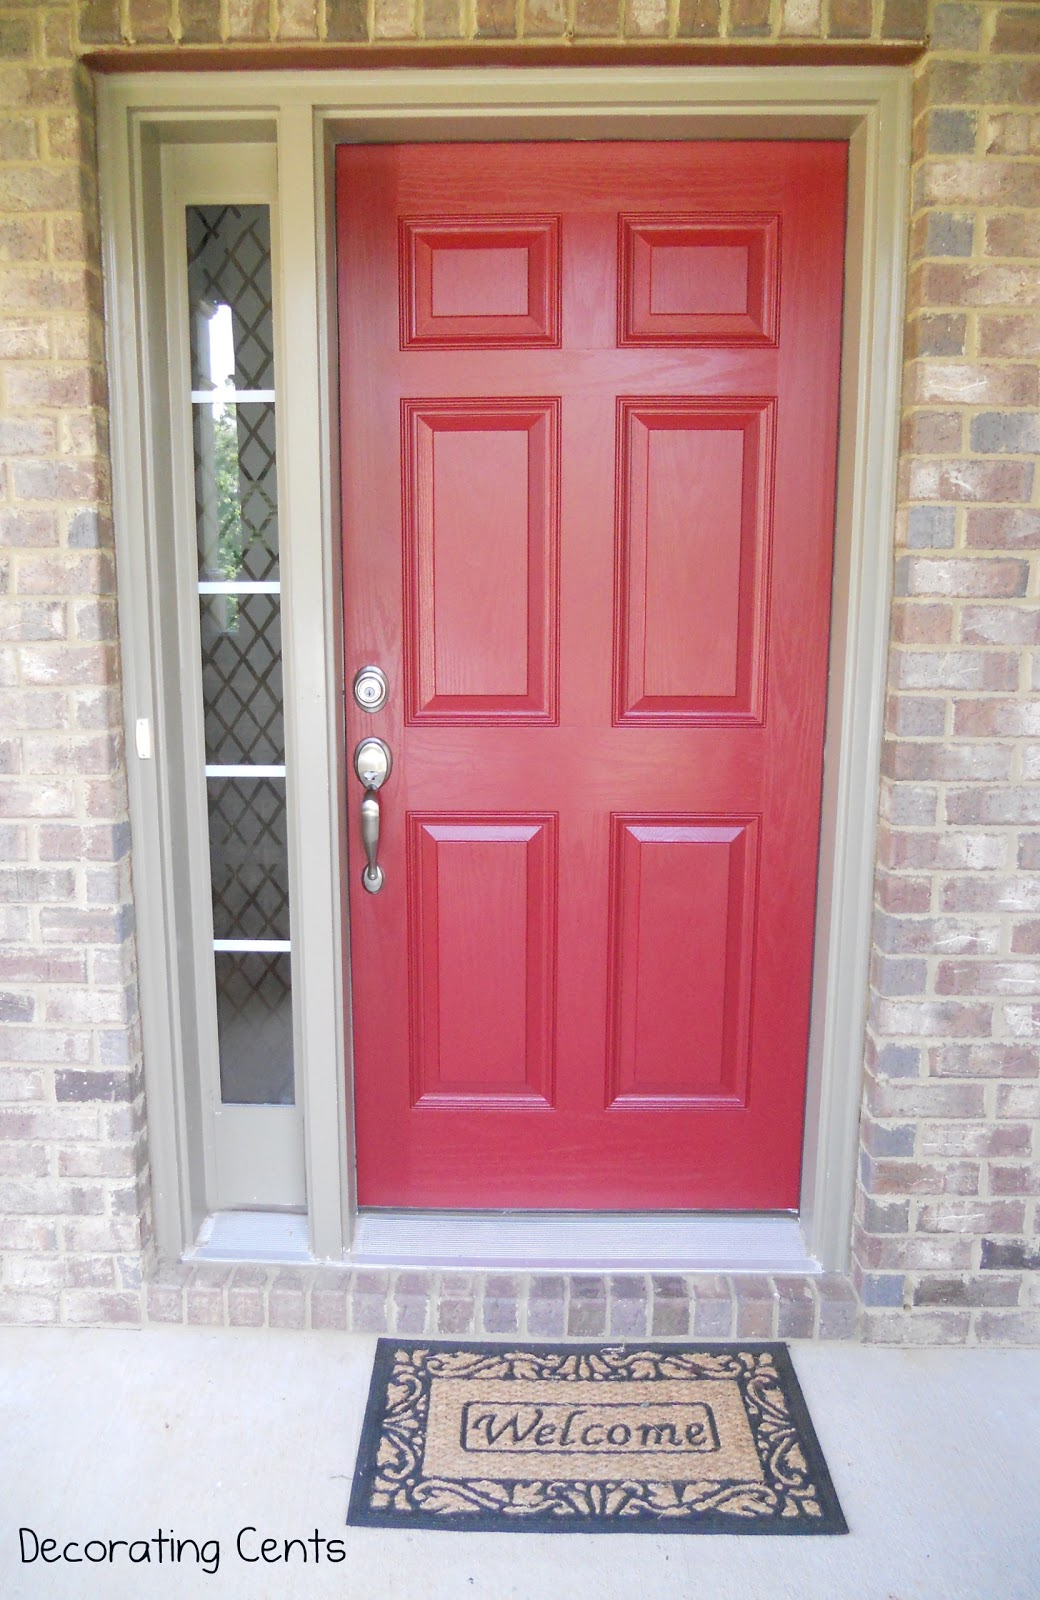 Decorating Cents: A Red Front Door